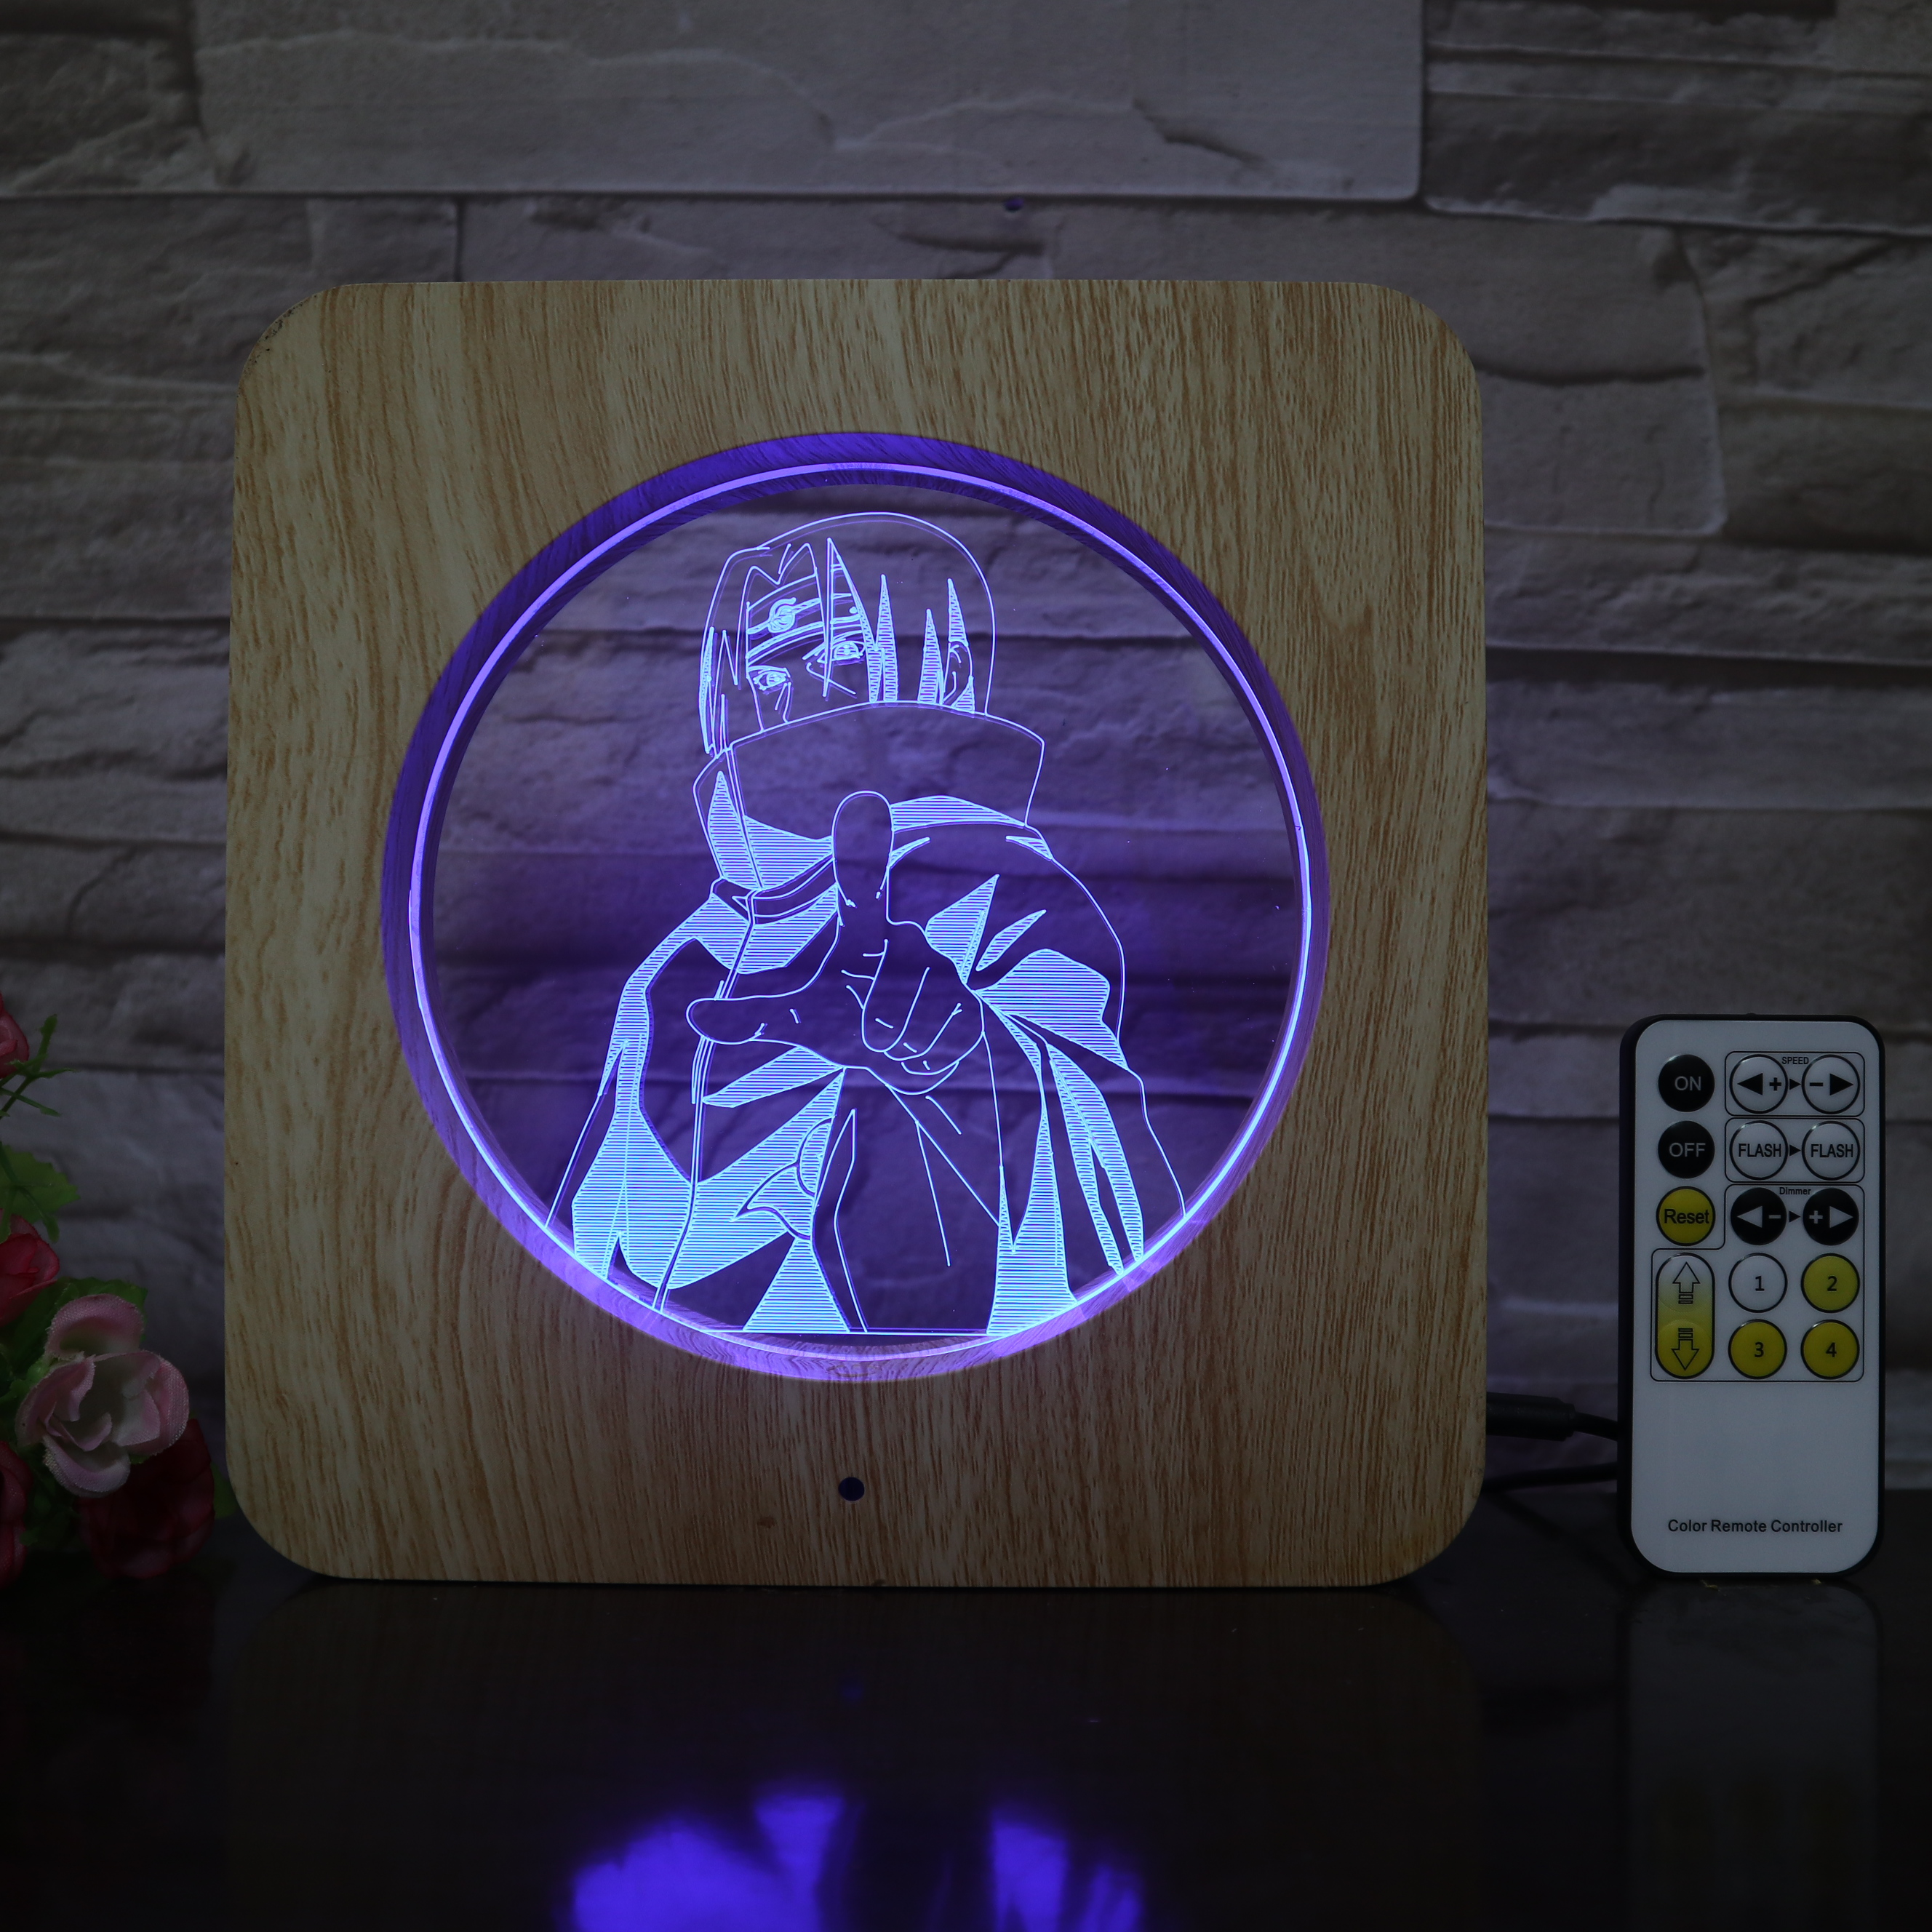 Naruto Shape 3D LED Lamp Plastic ABS Grain Line Lamp USB Table Lamp For Room Decor For Holiday Day Halloween Gift